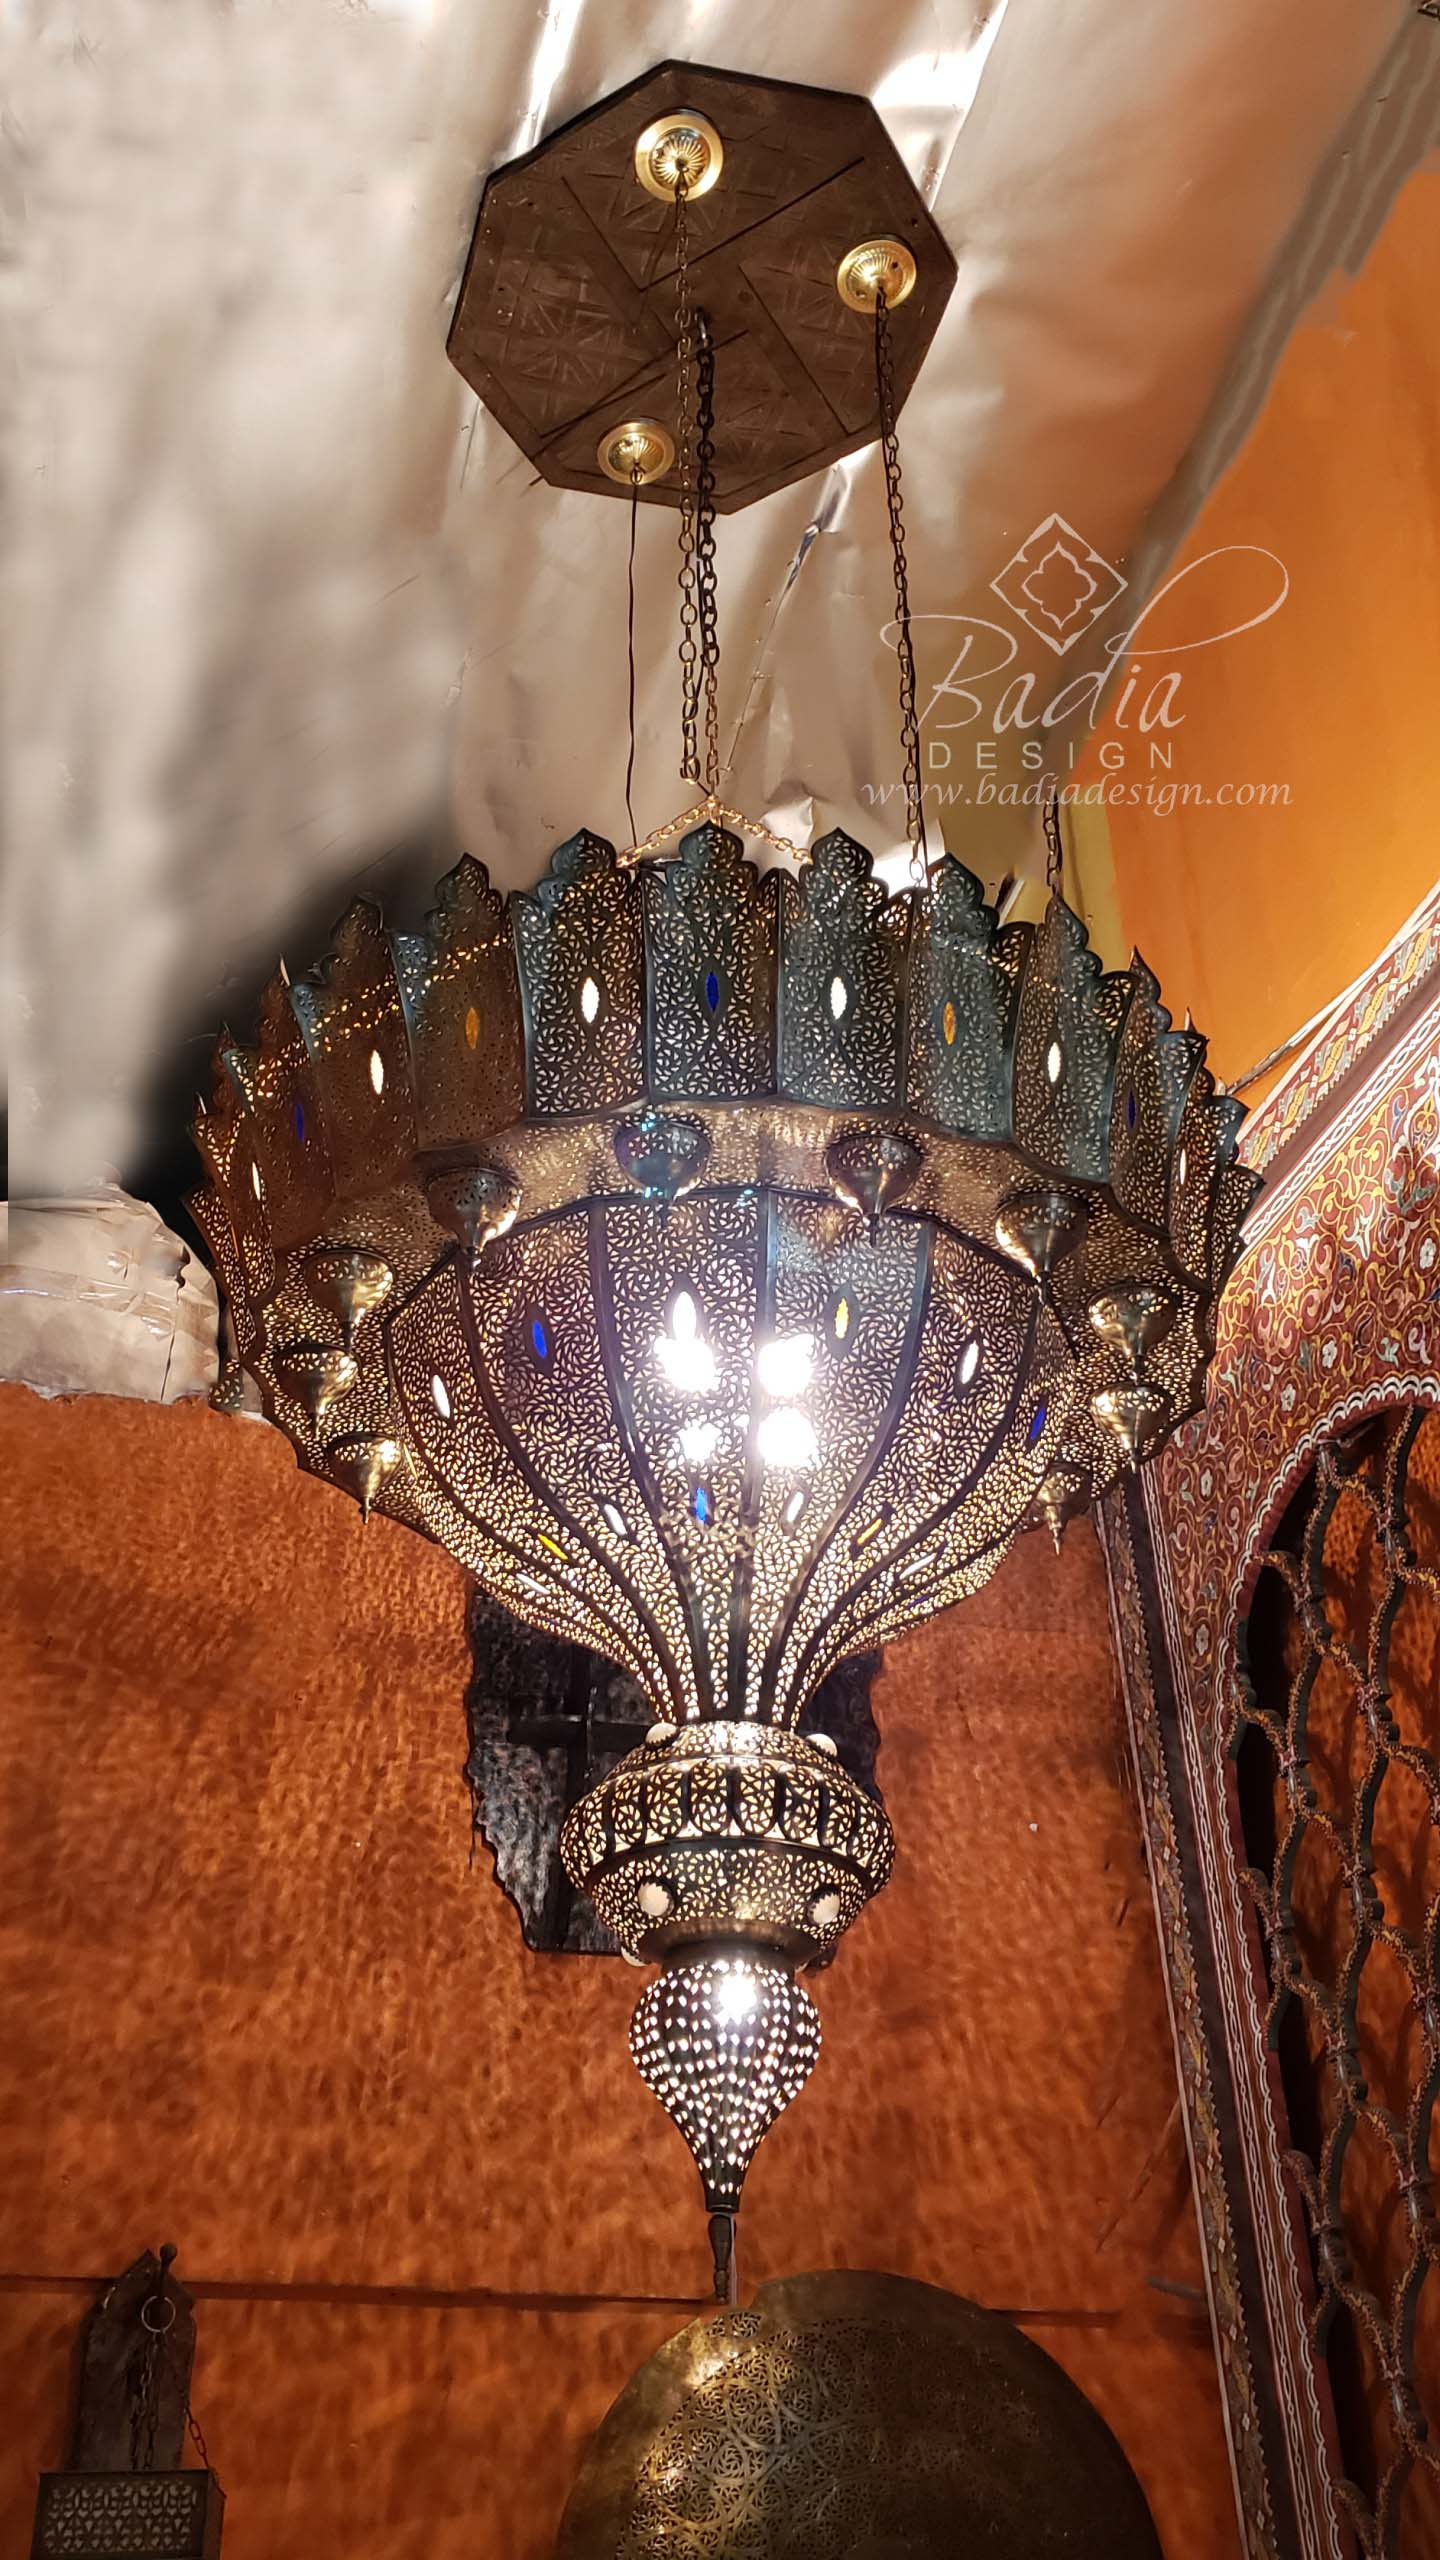 extra-large-moroccan-brass-chandelier-ch278.jpg